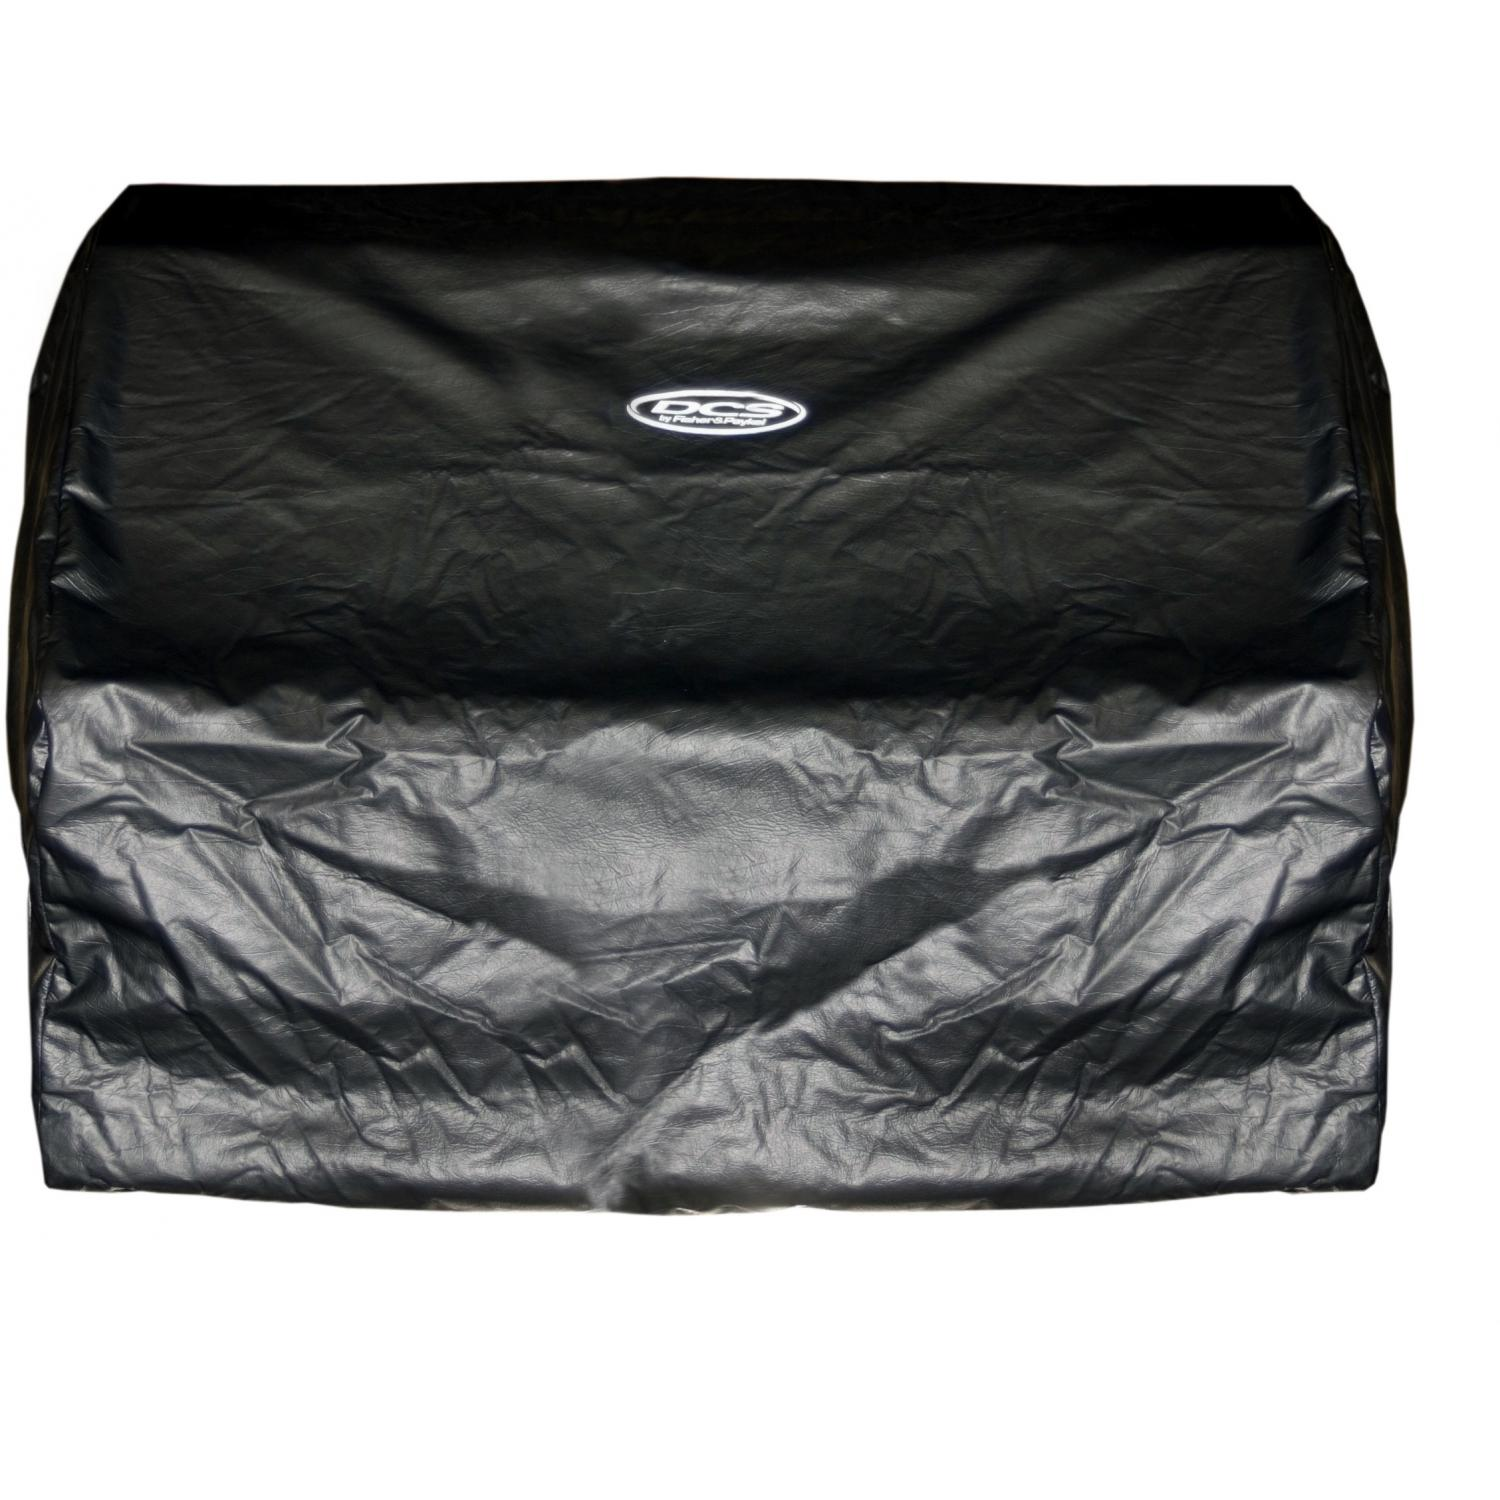 DCS Grill Cover For 48 Inch Gas Grill Built In BGA48VCBIA